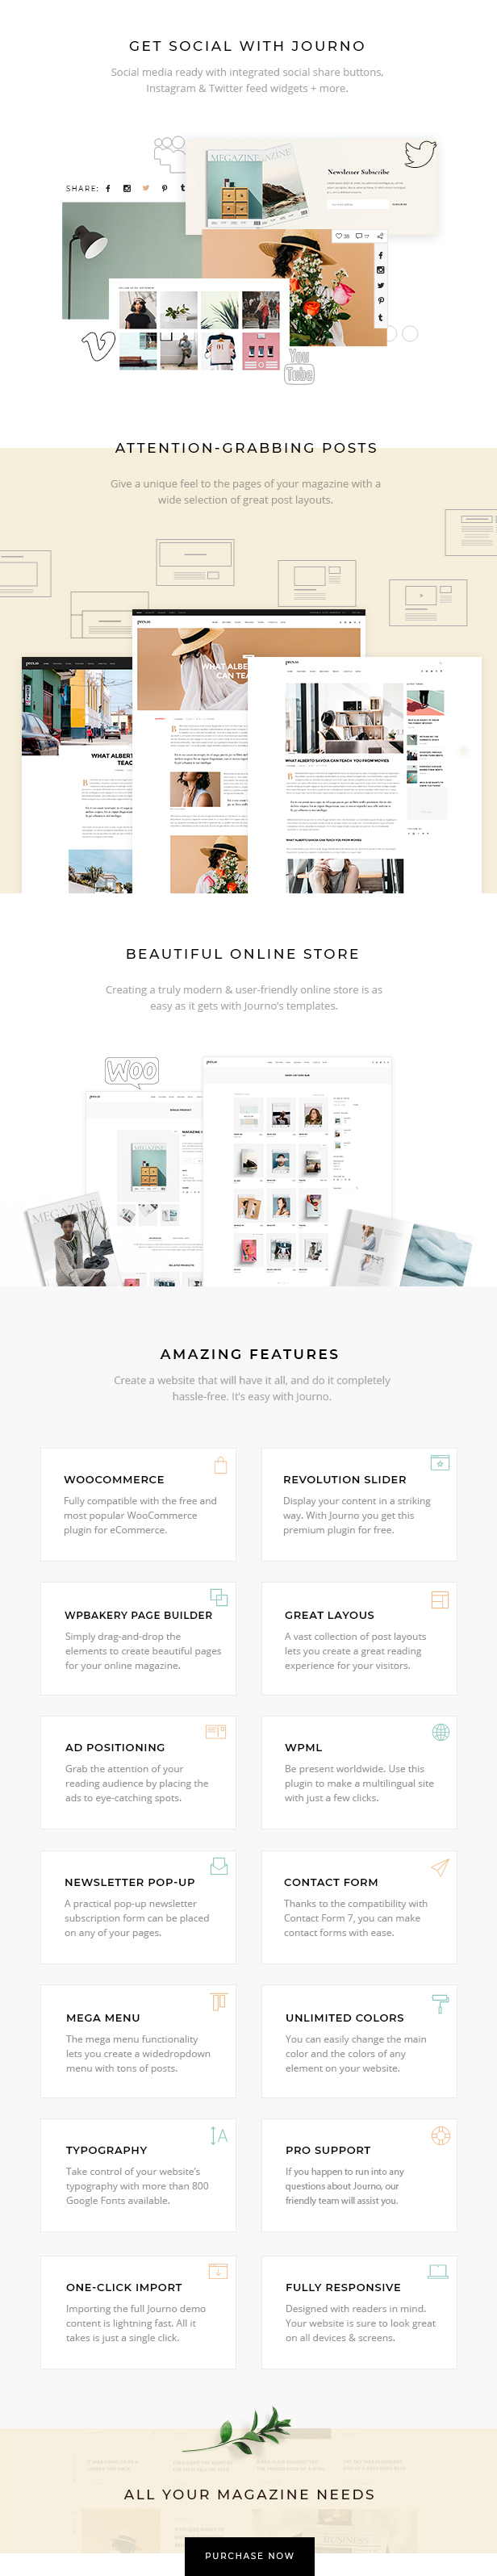 Journo - Creative Magazine & Blog Theme - 3